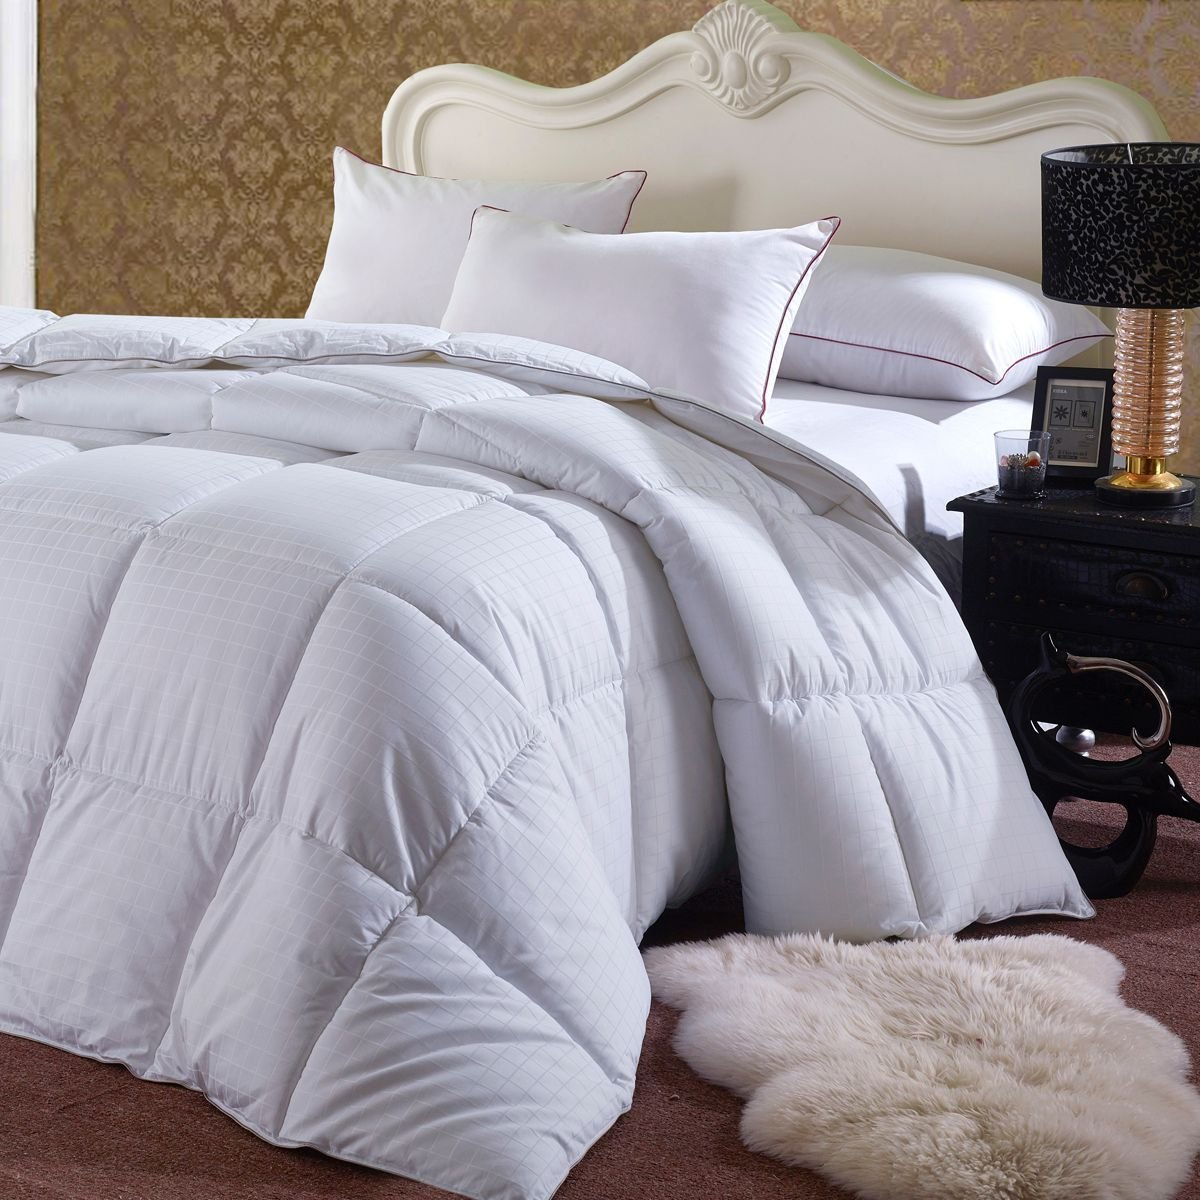 Soft and Fluffy, Overfilled Dobby Down Alternative Comforter, Full / Queen Size, Checkered White, 100% Cotton Shell 300 TC - 85 OZ Fill - Duvet Insert